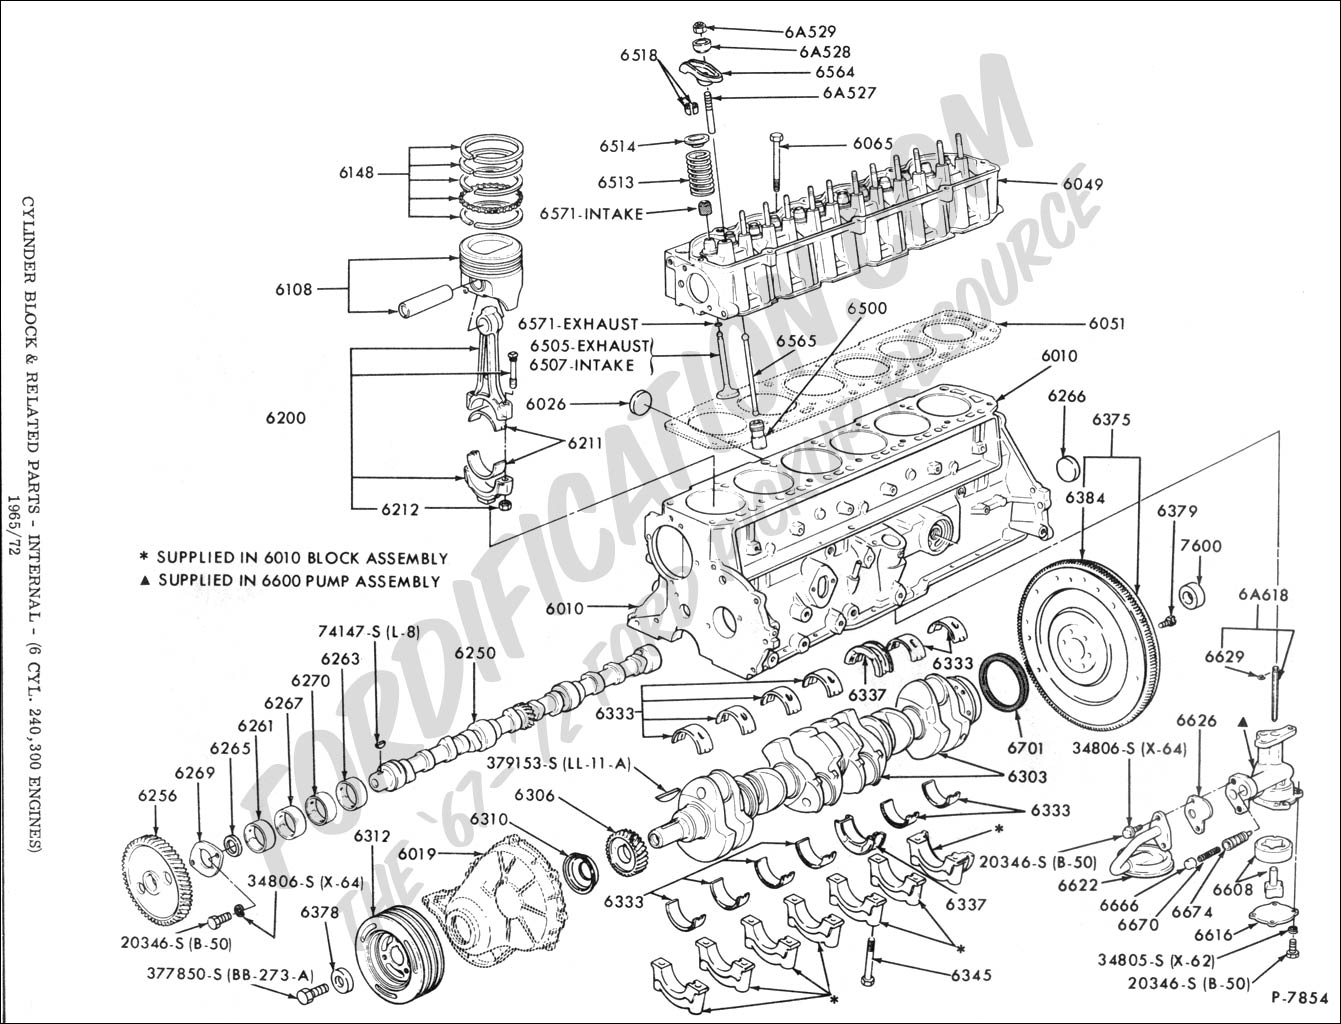 Ford 460 Distributor Parts Diagram Ford Wiring Diagram